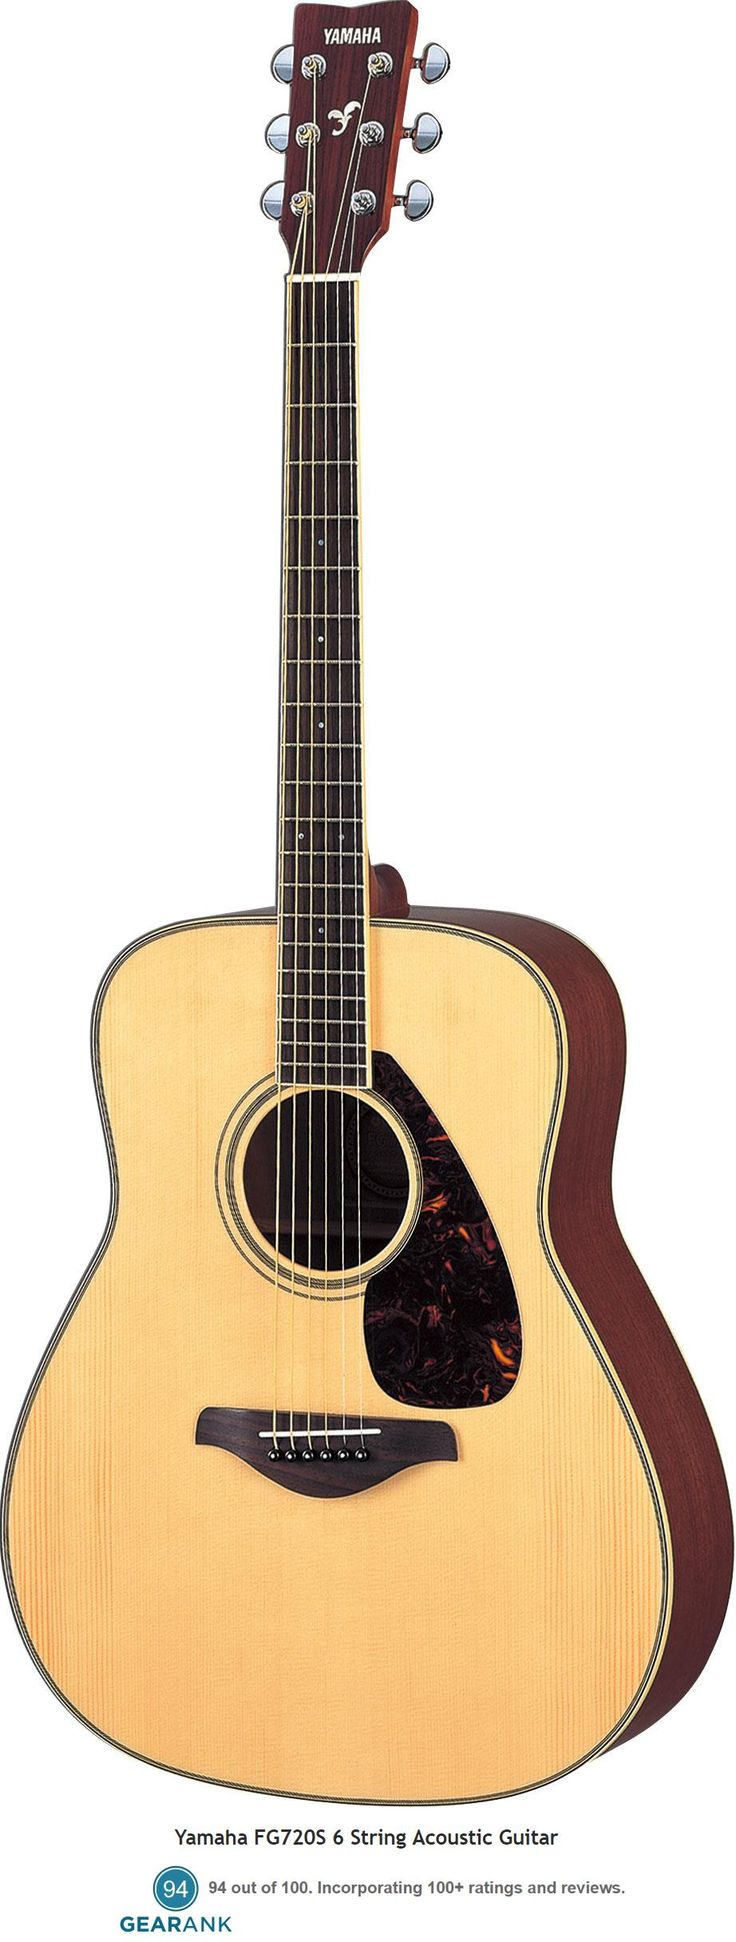 Yamaha FG720S. Although this acoustic guitar is no longer being made by Yamaha it is extremely highly rated and can still be bought online for less than $300.